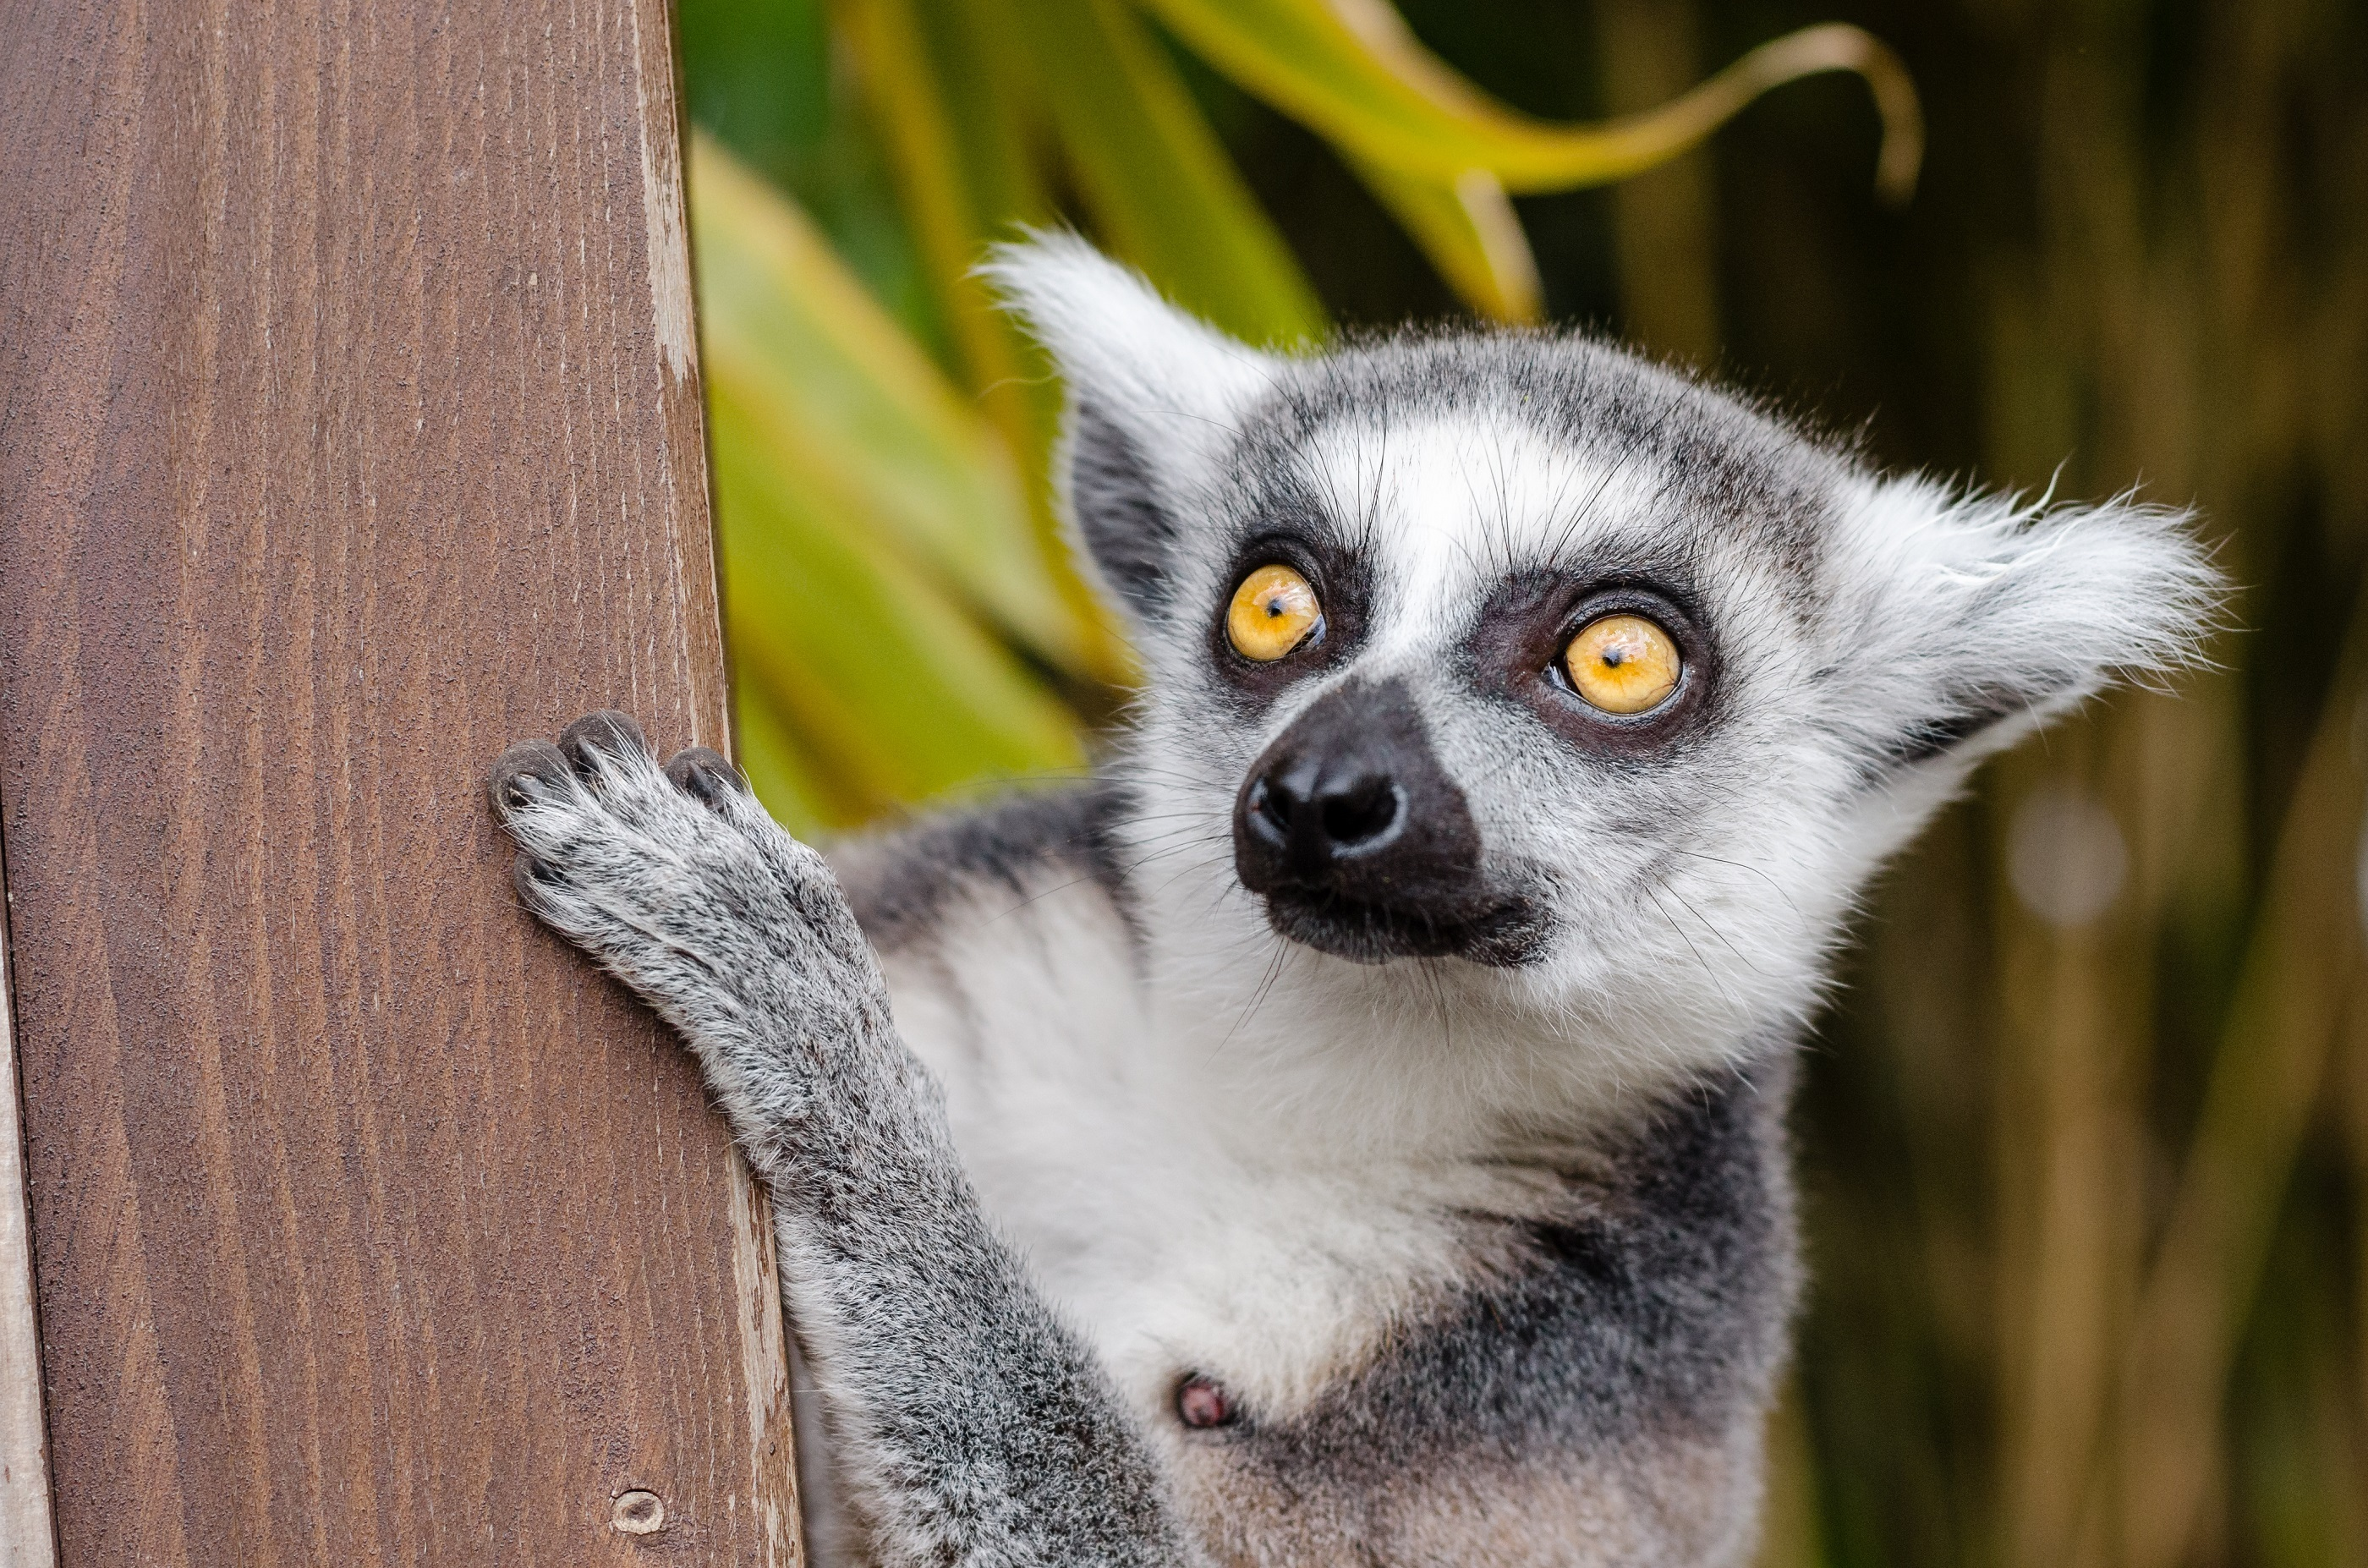 79521 download wallpaper Animals, Spotted, Spotty, Sight, Opinion, Lemur screensavers and pictures for free